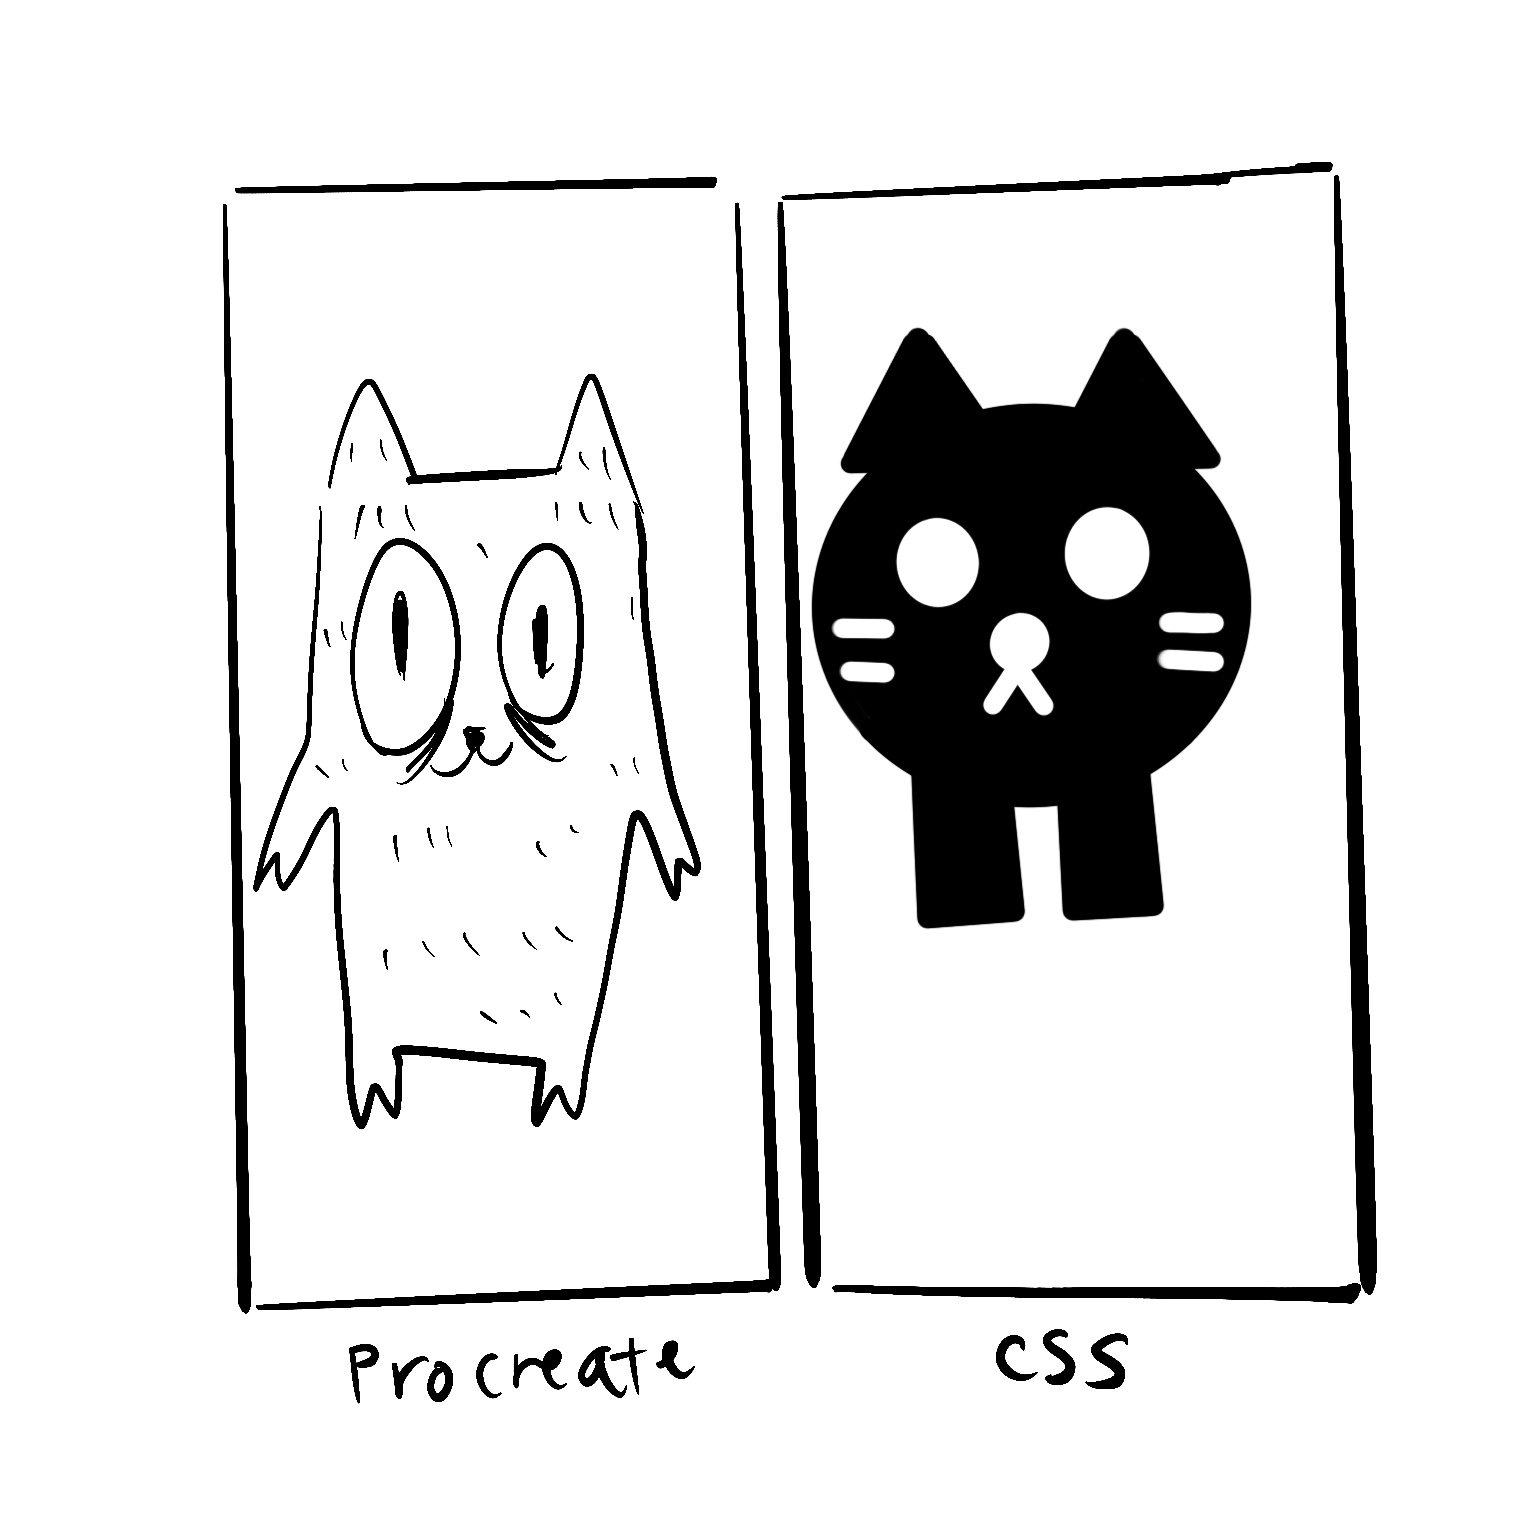 "This picture consists of two panels. On the left side is the drawing of a cat that has details, on the right is a drawing of a cat that is built with shapes. The description on the left panel says ""Procreate"" and on the right says ""CSS""."